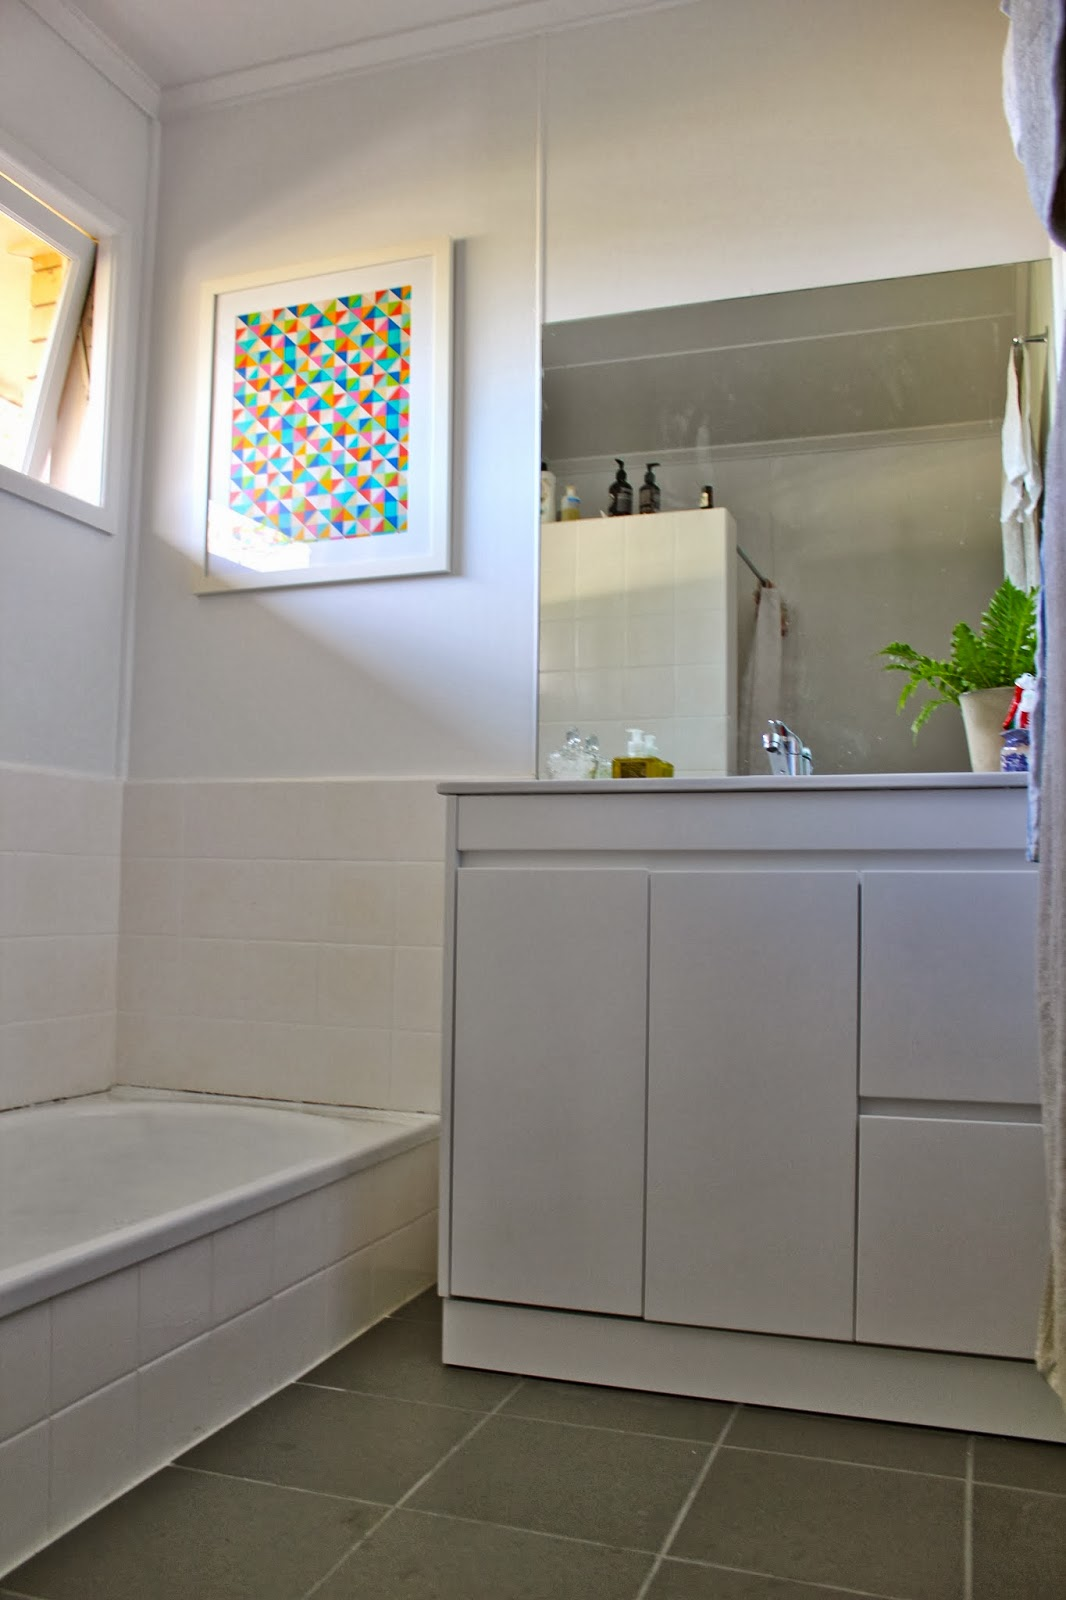 Ideal A Simple Budget Bathroom Makeover for Under